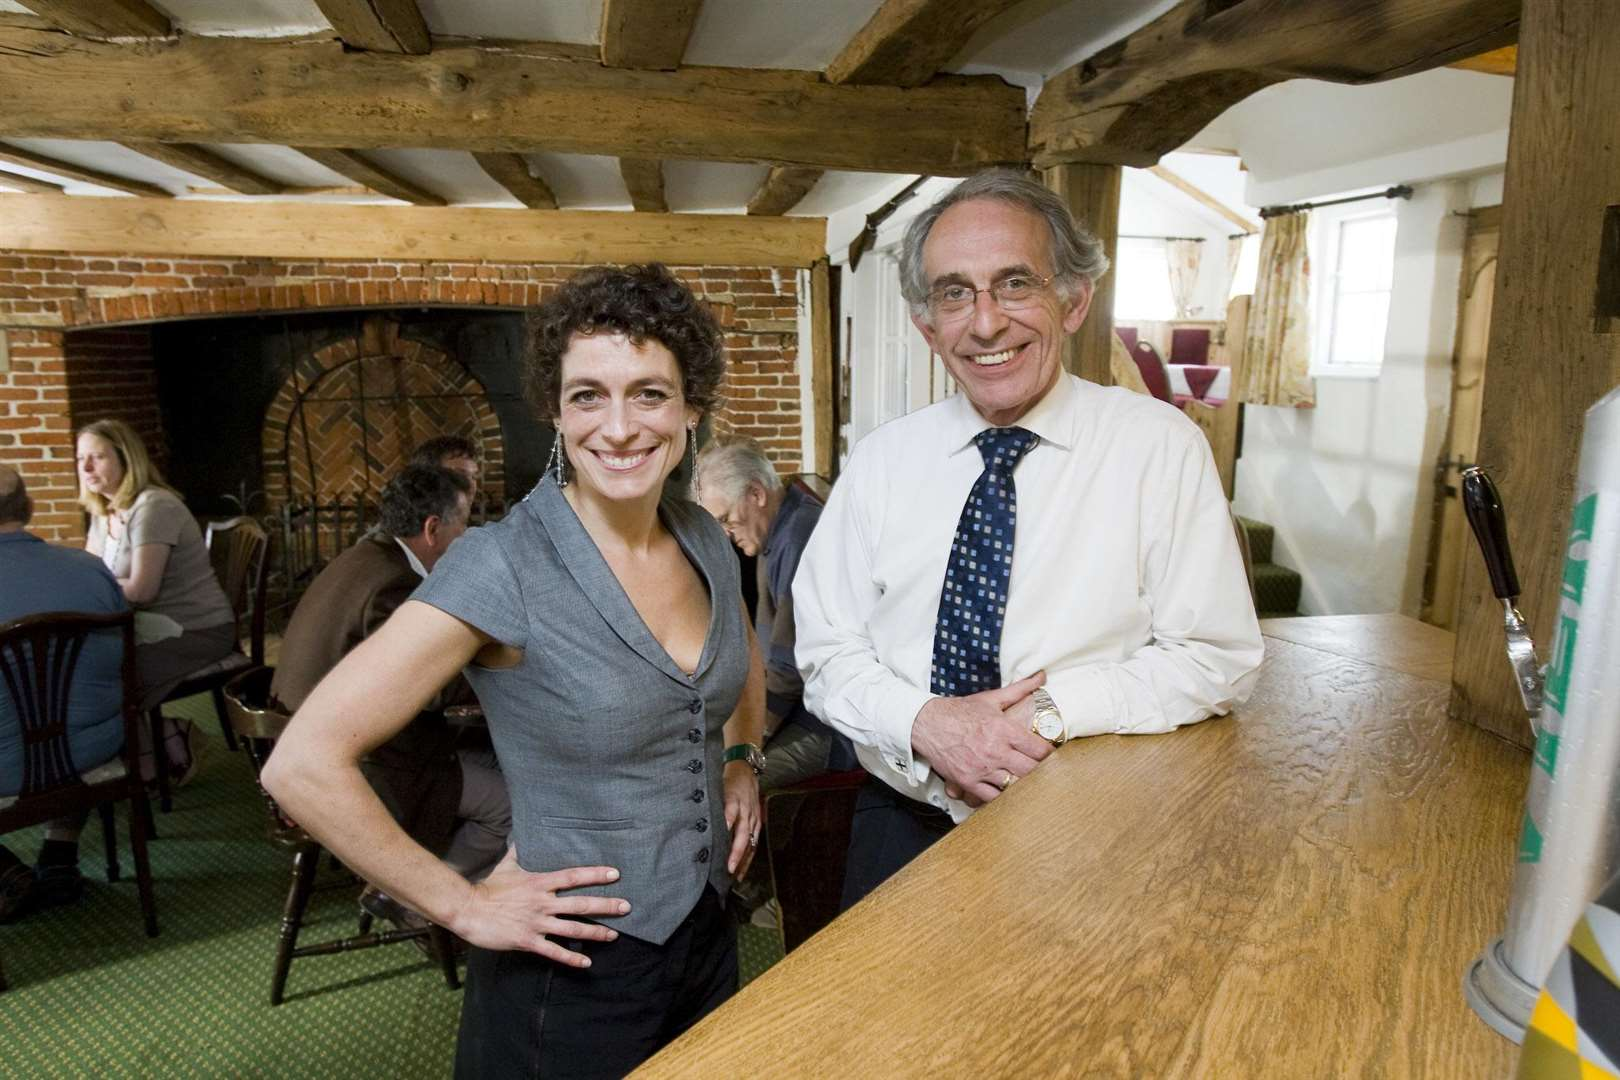 MAN OF CHANGE: Robin Twigge impressed Alex Polizzi with the changes he has made over the years.